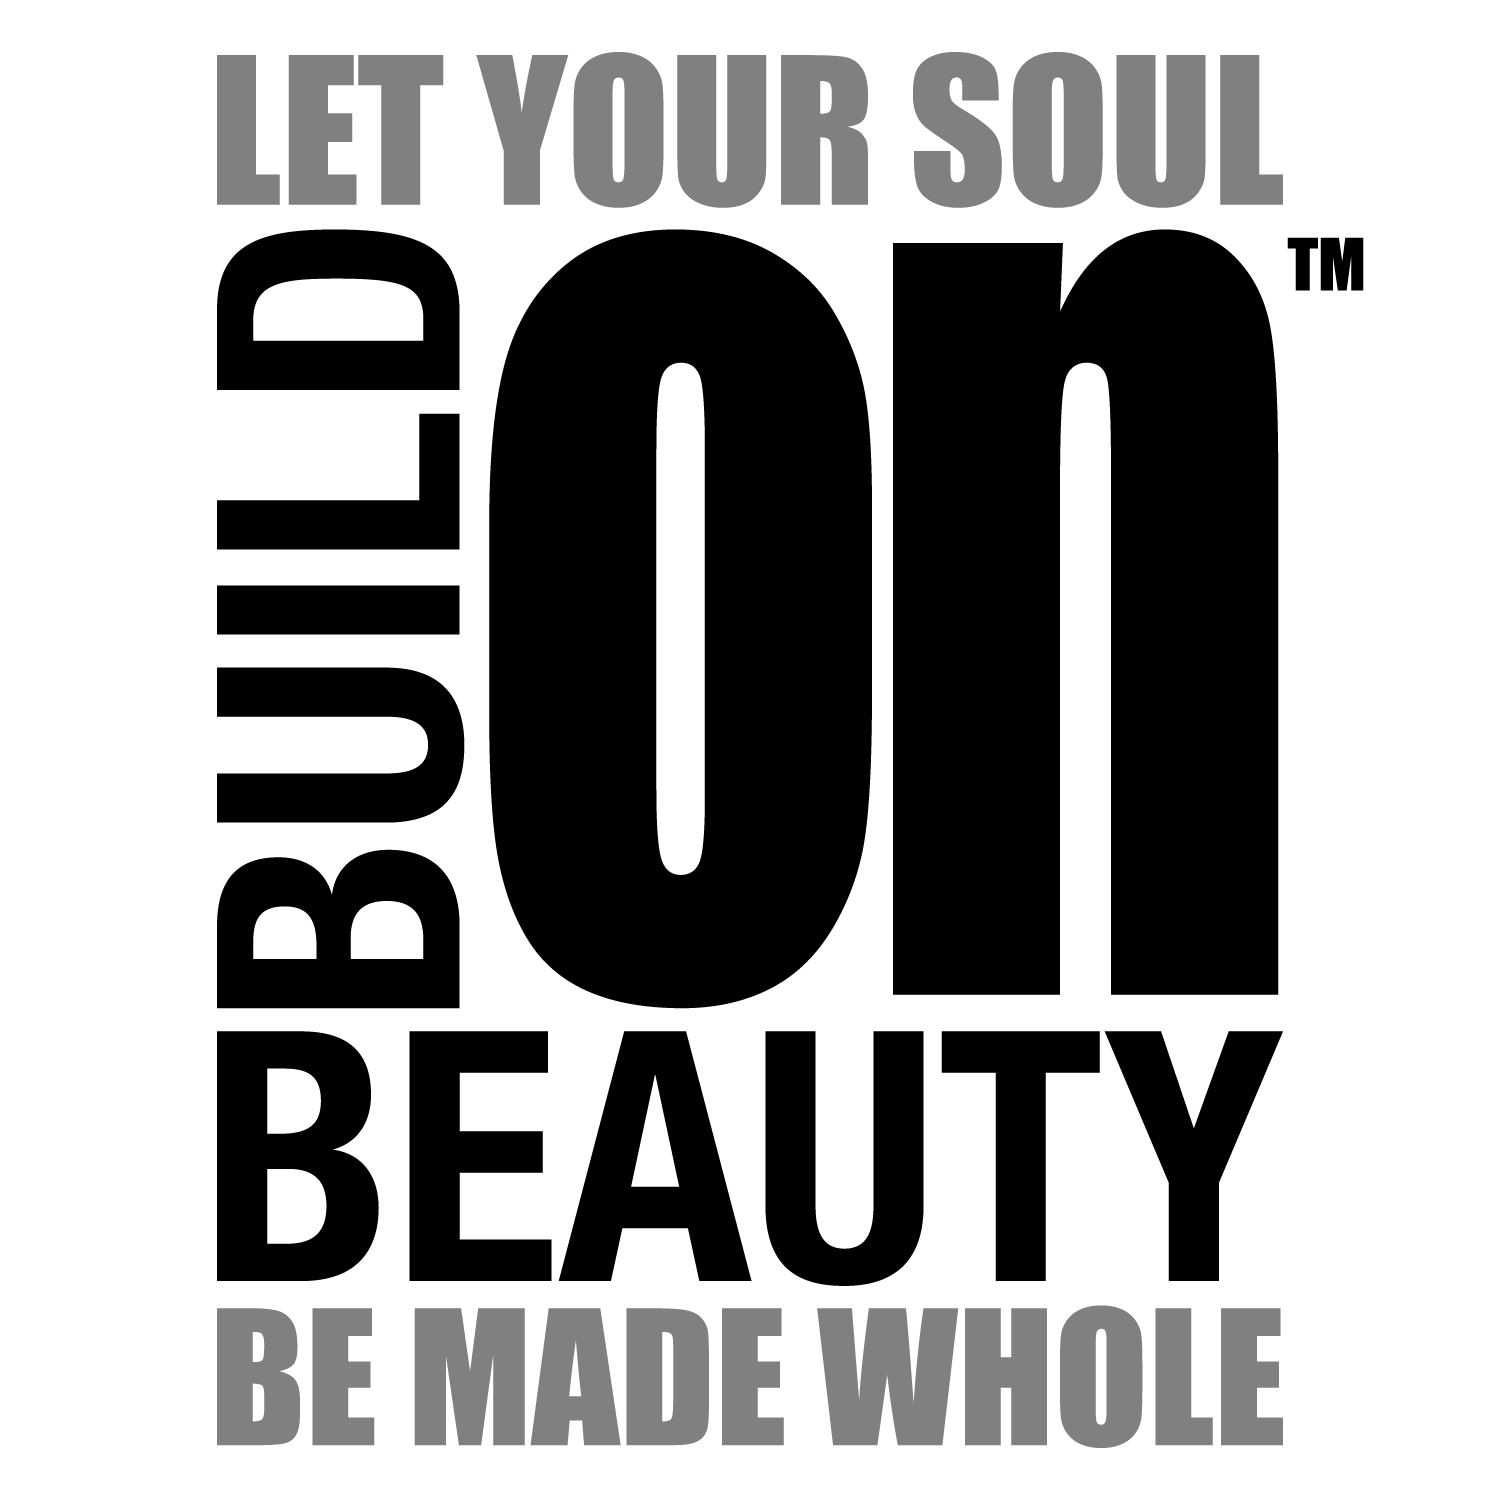 The Build On Beauty Podcast - Let your soul be made whole!